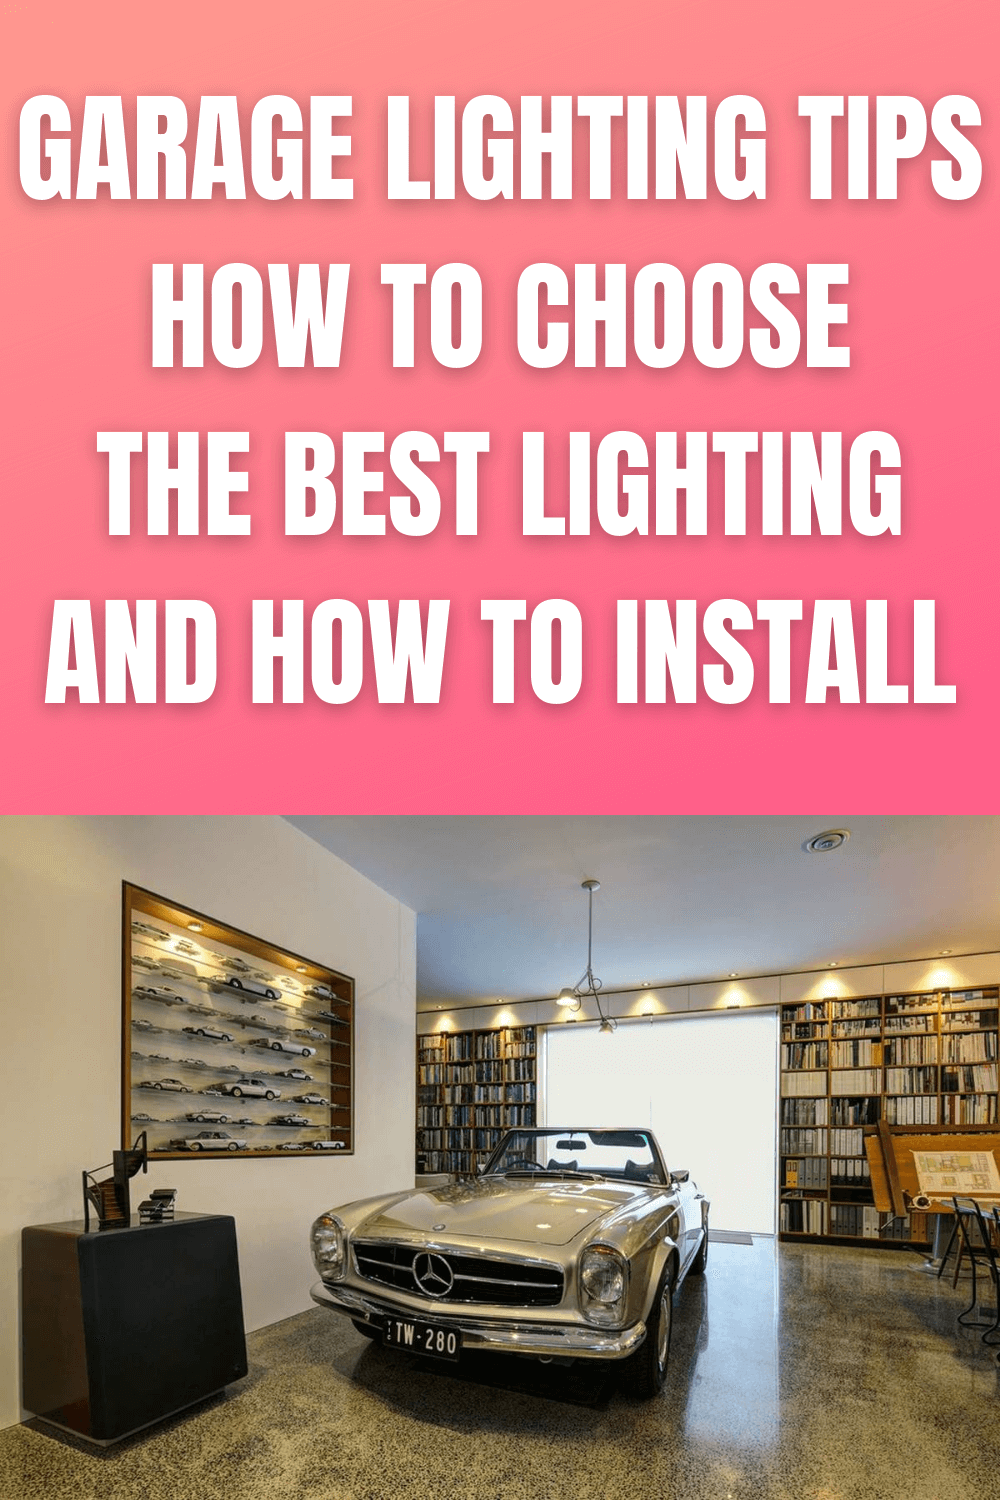 GARAGE LIGHTING TIPS HOW TO CHOOSE THE BEST LIGHTING AND HOW TO INSTALL